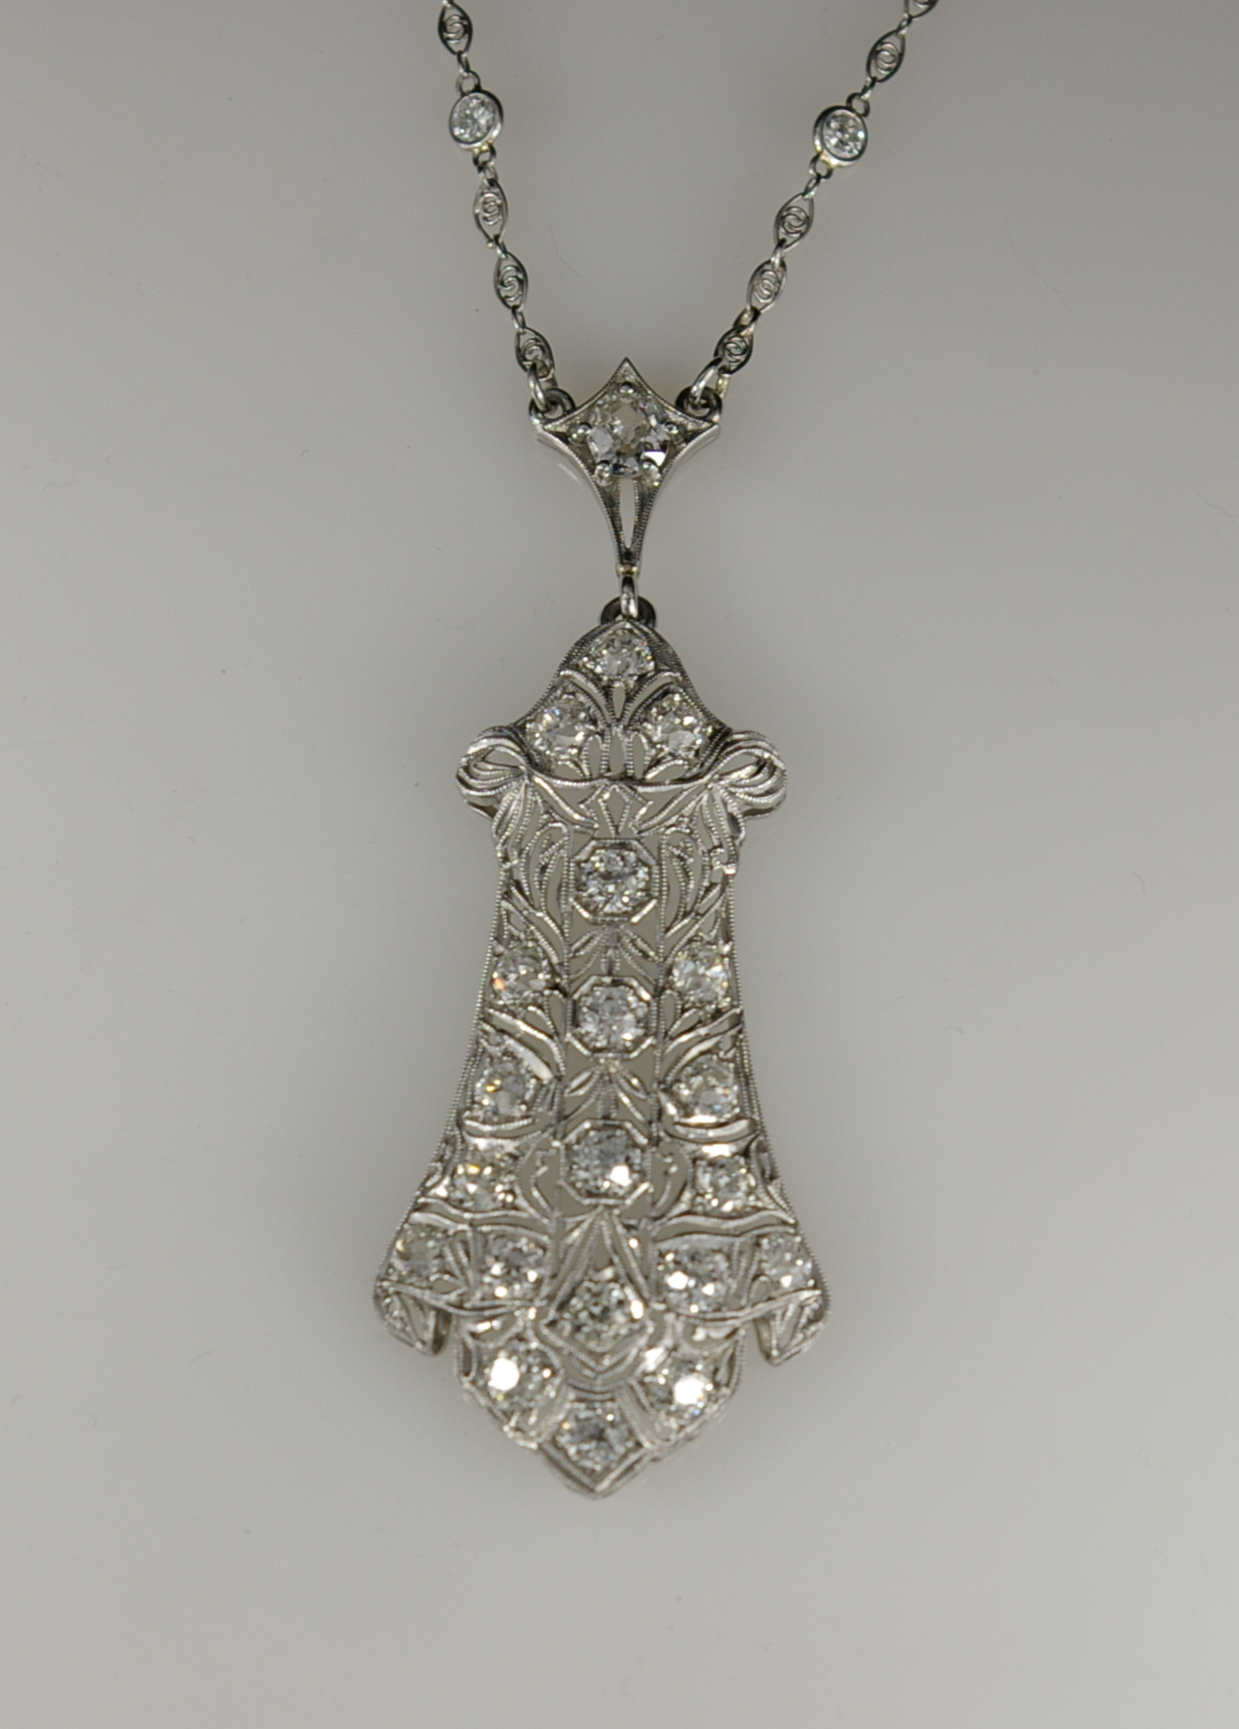 The restoration of an Edwardian Platinum Necklace at Crane jewelers front of finished piece 1a.JPG